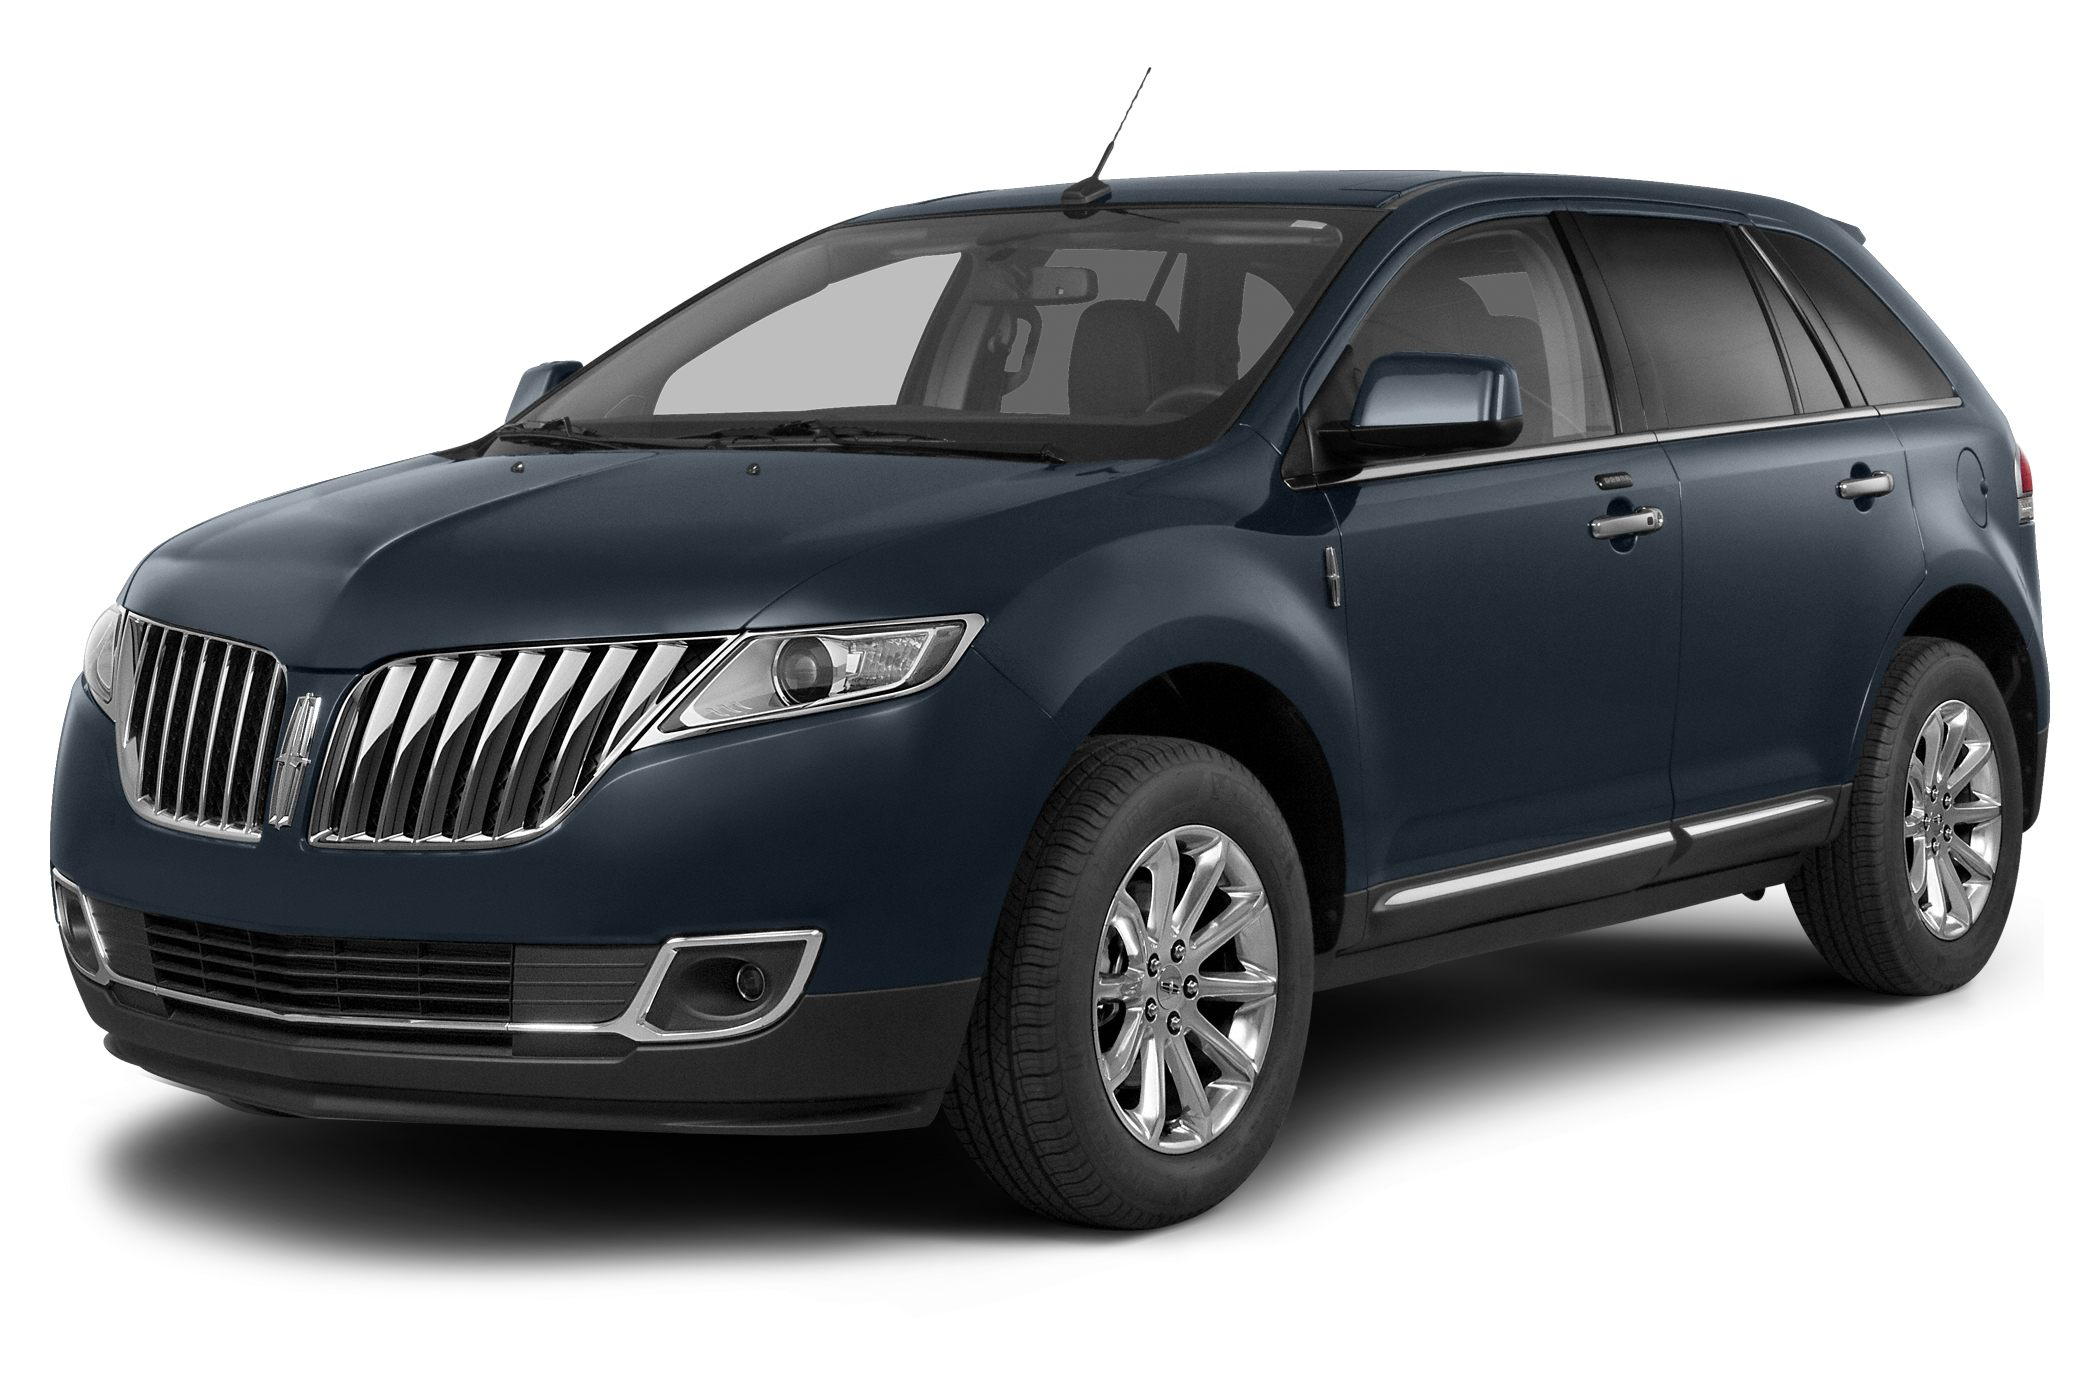 2015 Lincoln MKX Base SUV for sale in Dearborn for $39,795 with 7 miles.